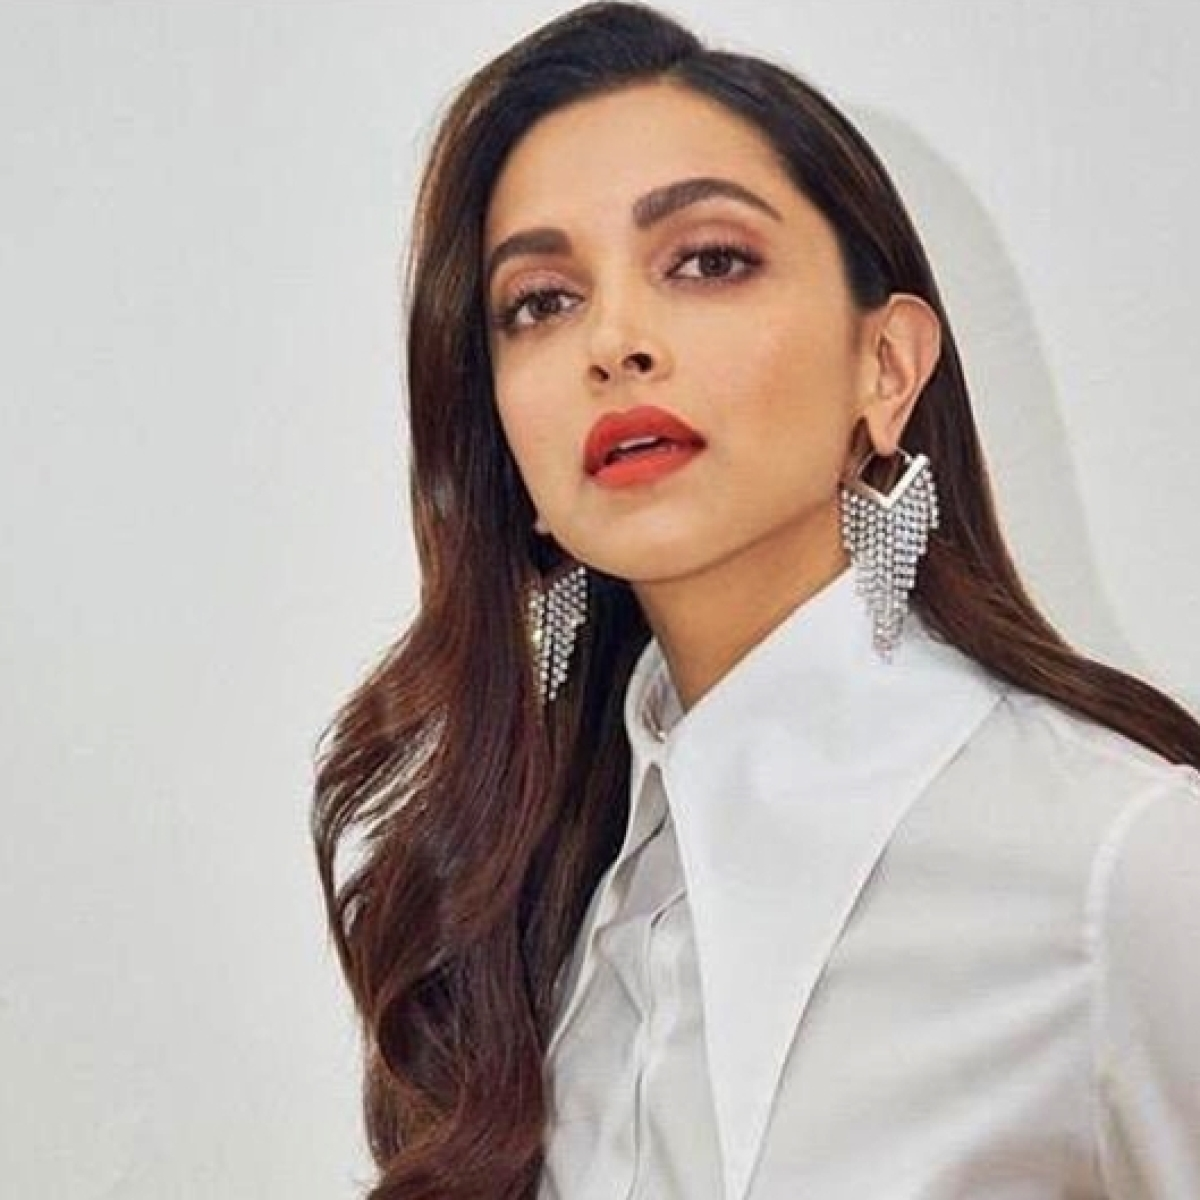 Deepika Padukone is a vision in white as she launches lecture series on mental health